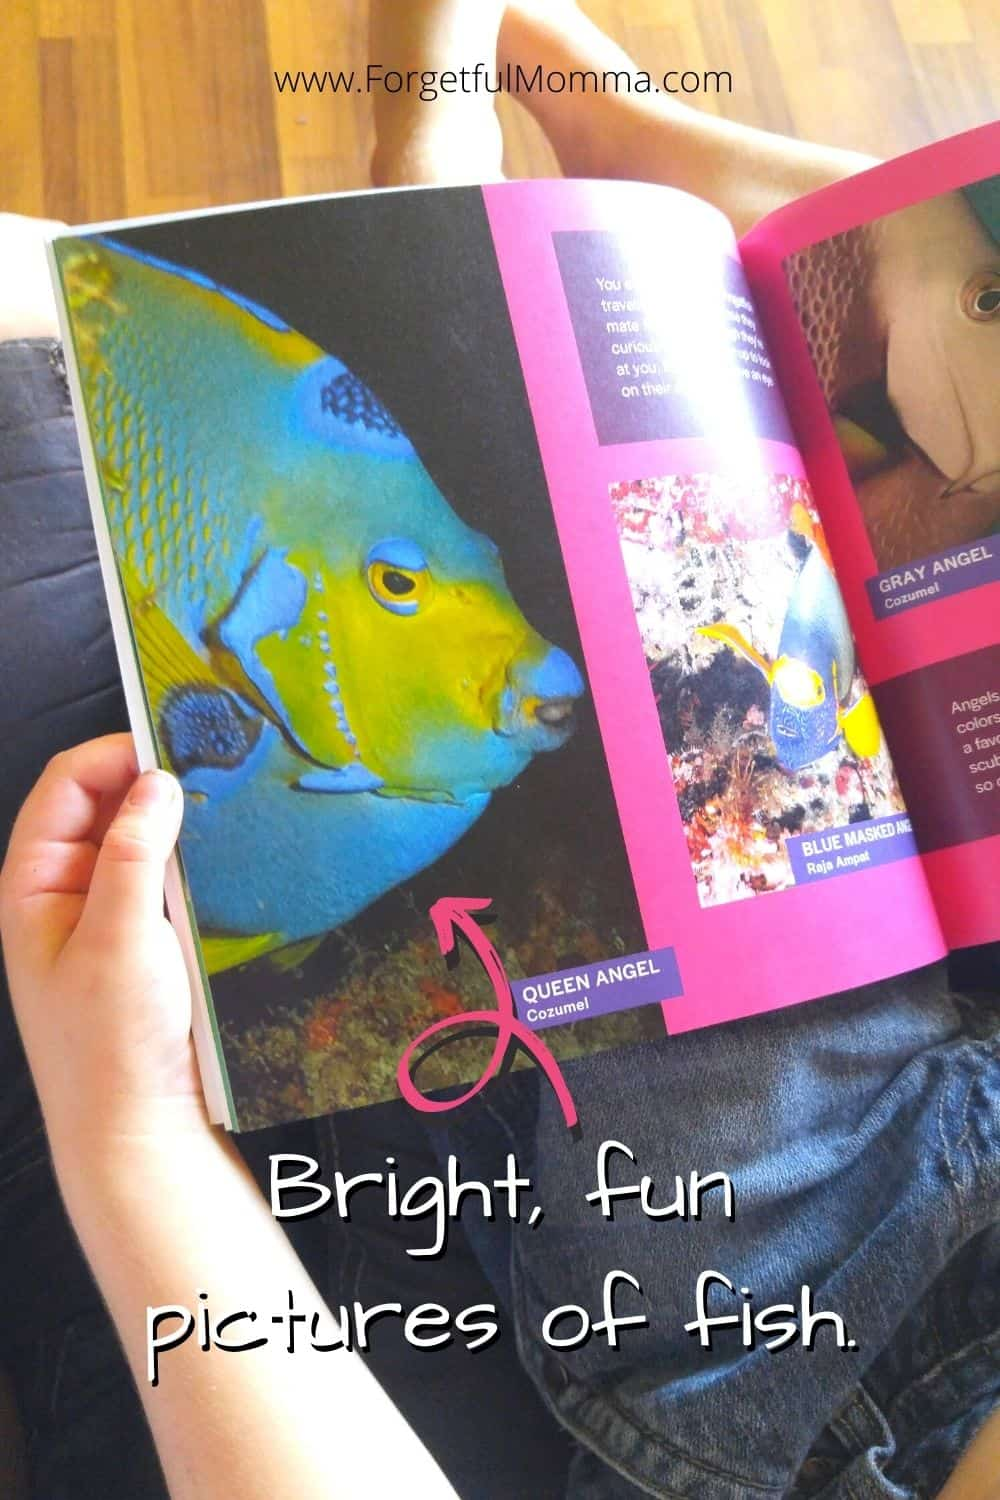 All fish Face Picture Book - page from book